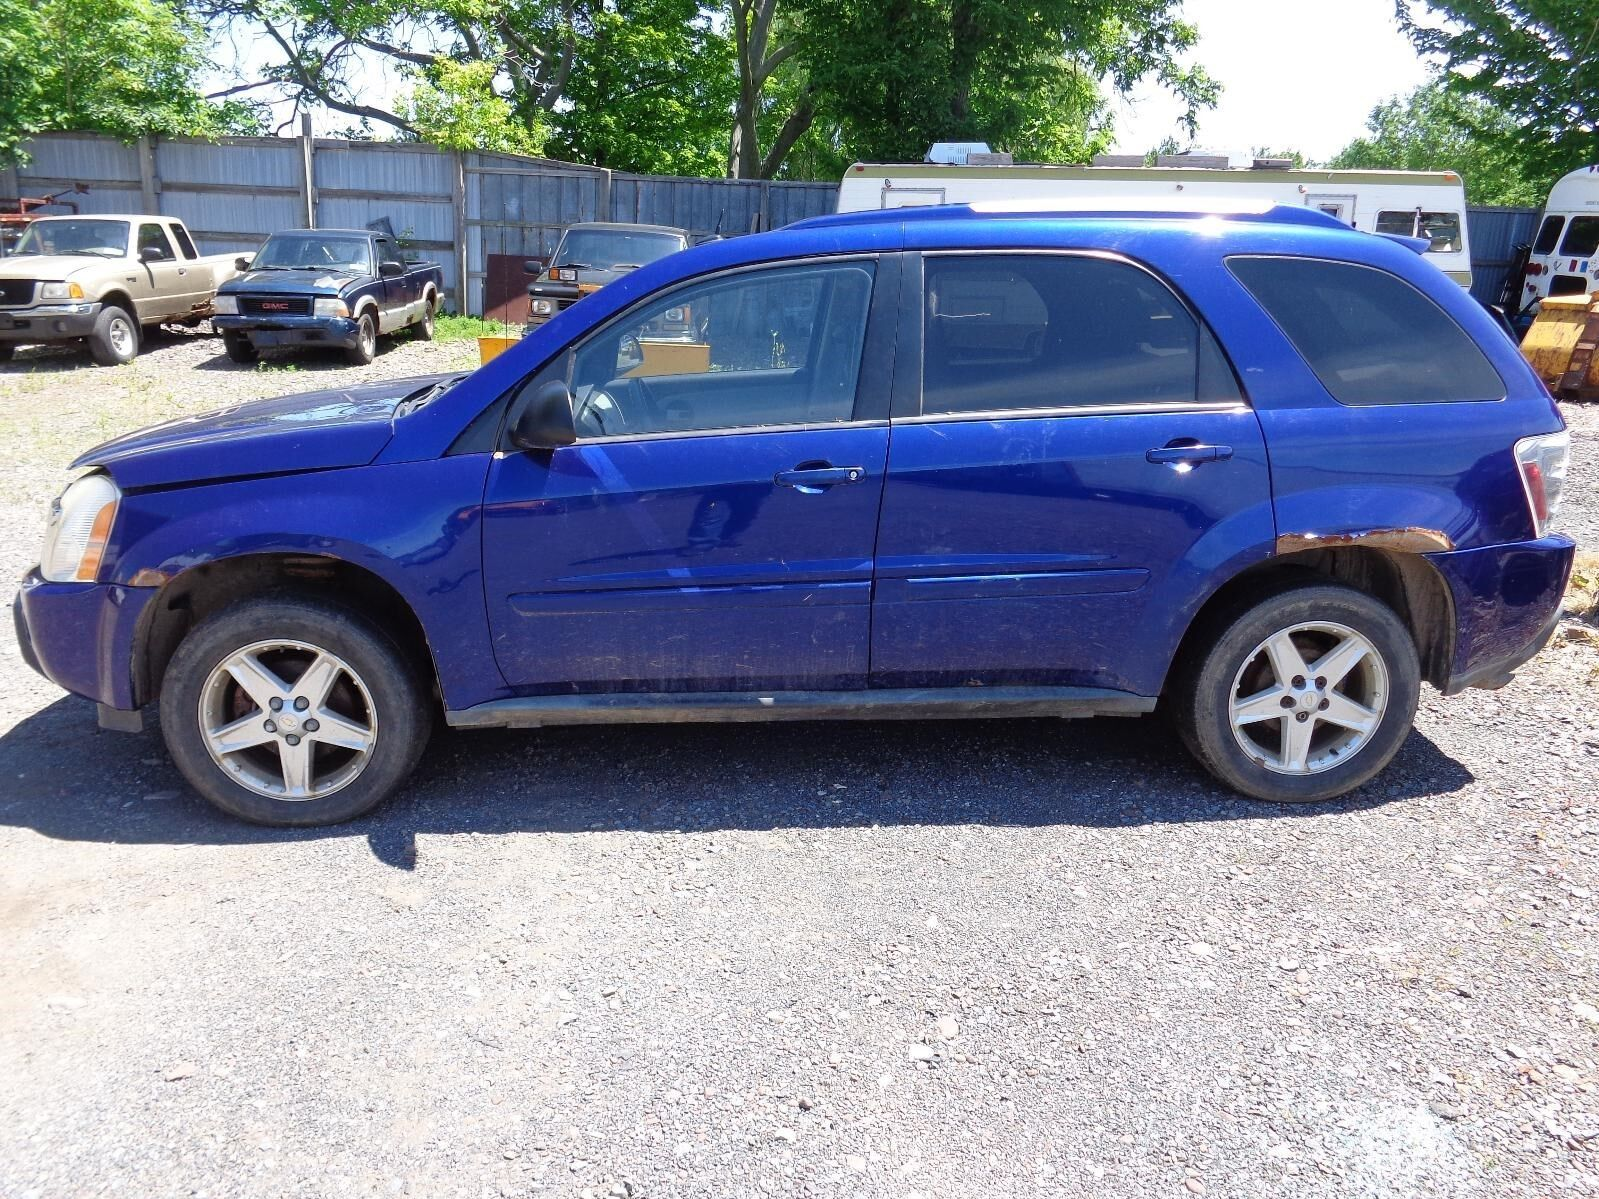 2009 Equinox Door Wiring Harness 32 Diagram Images 2005 Chevy 57set Id880000500f Used Chevrolet Interior Panels Parts For Sale